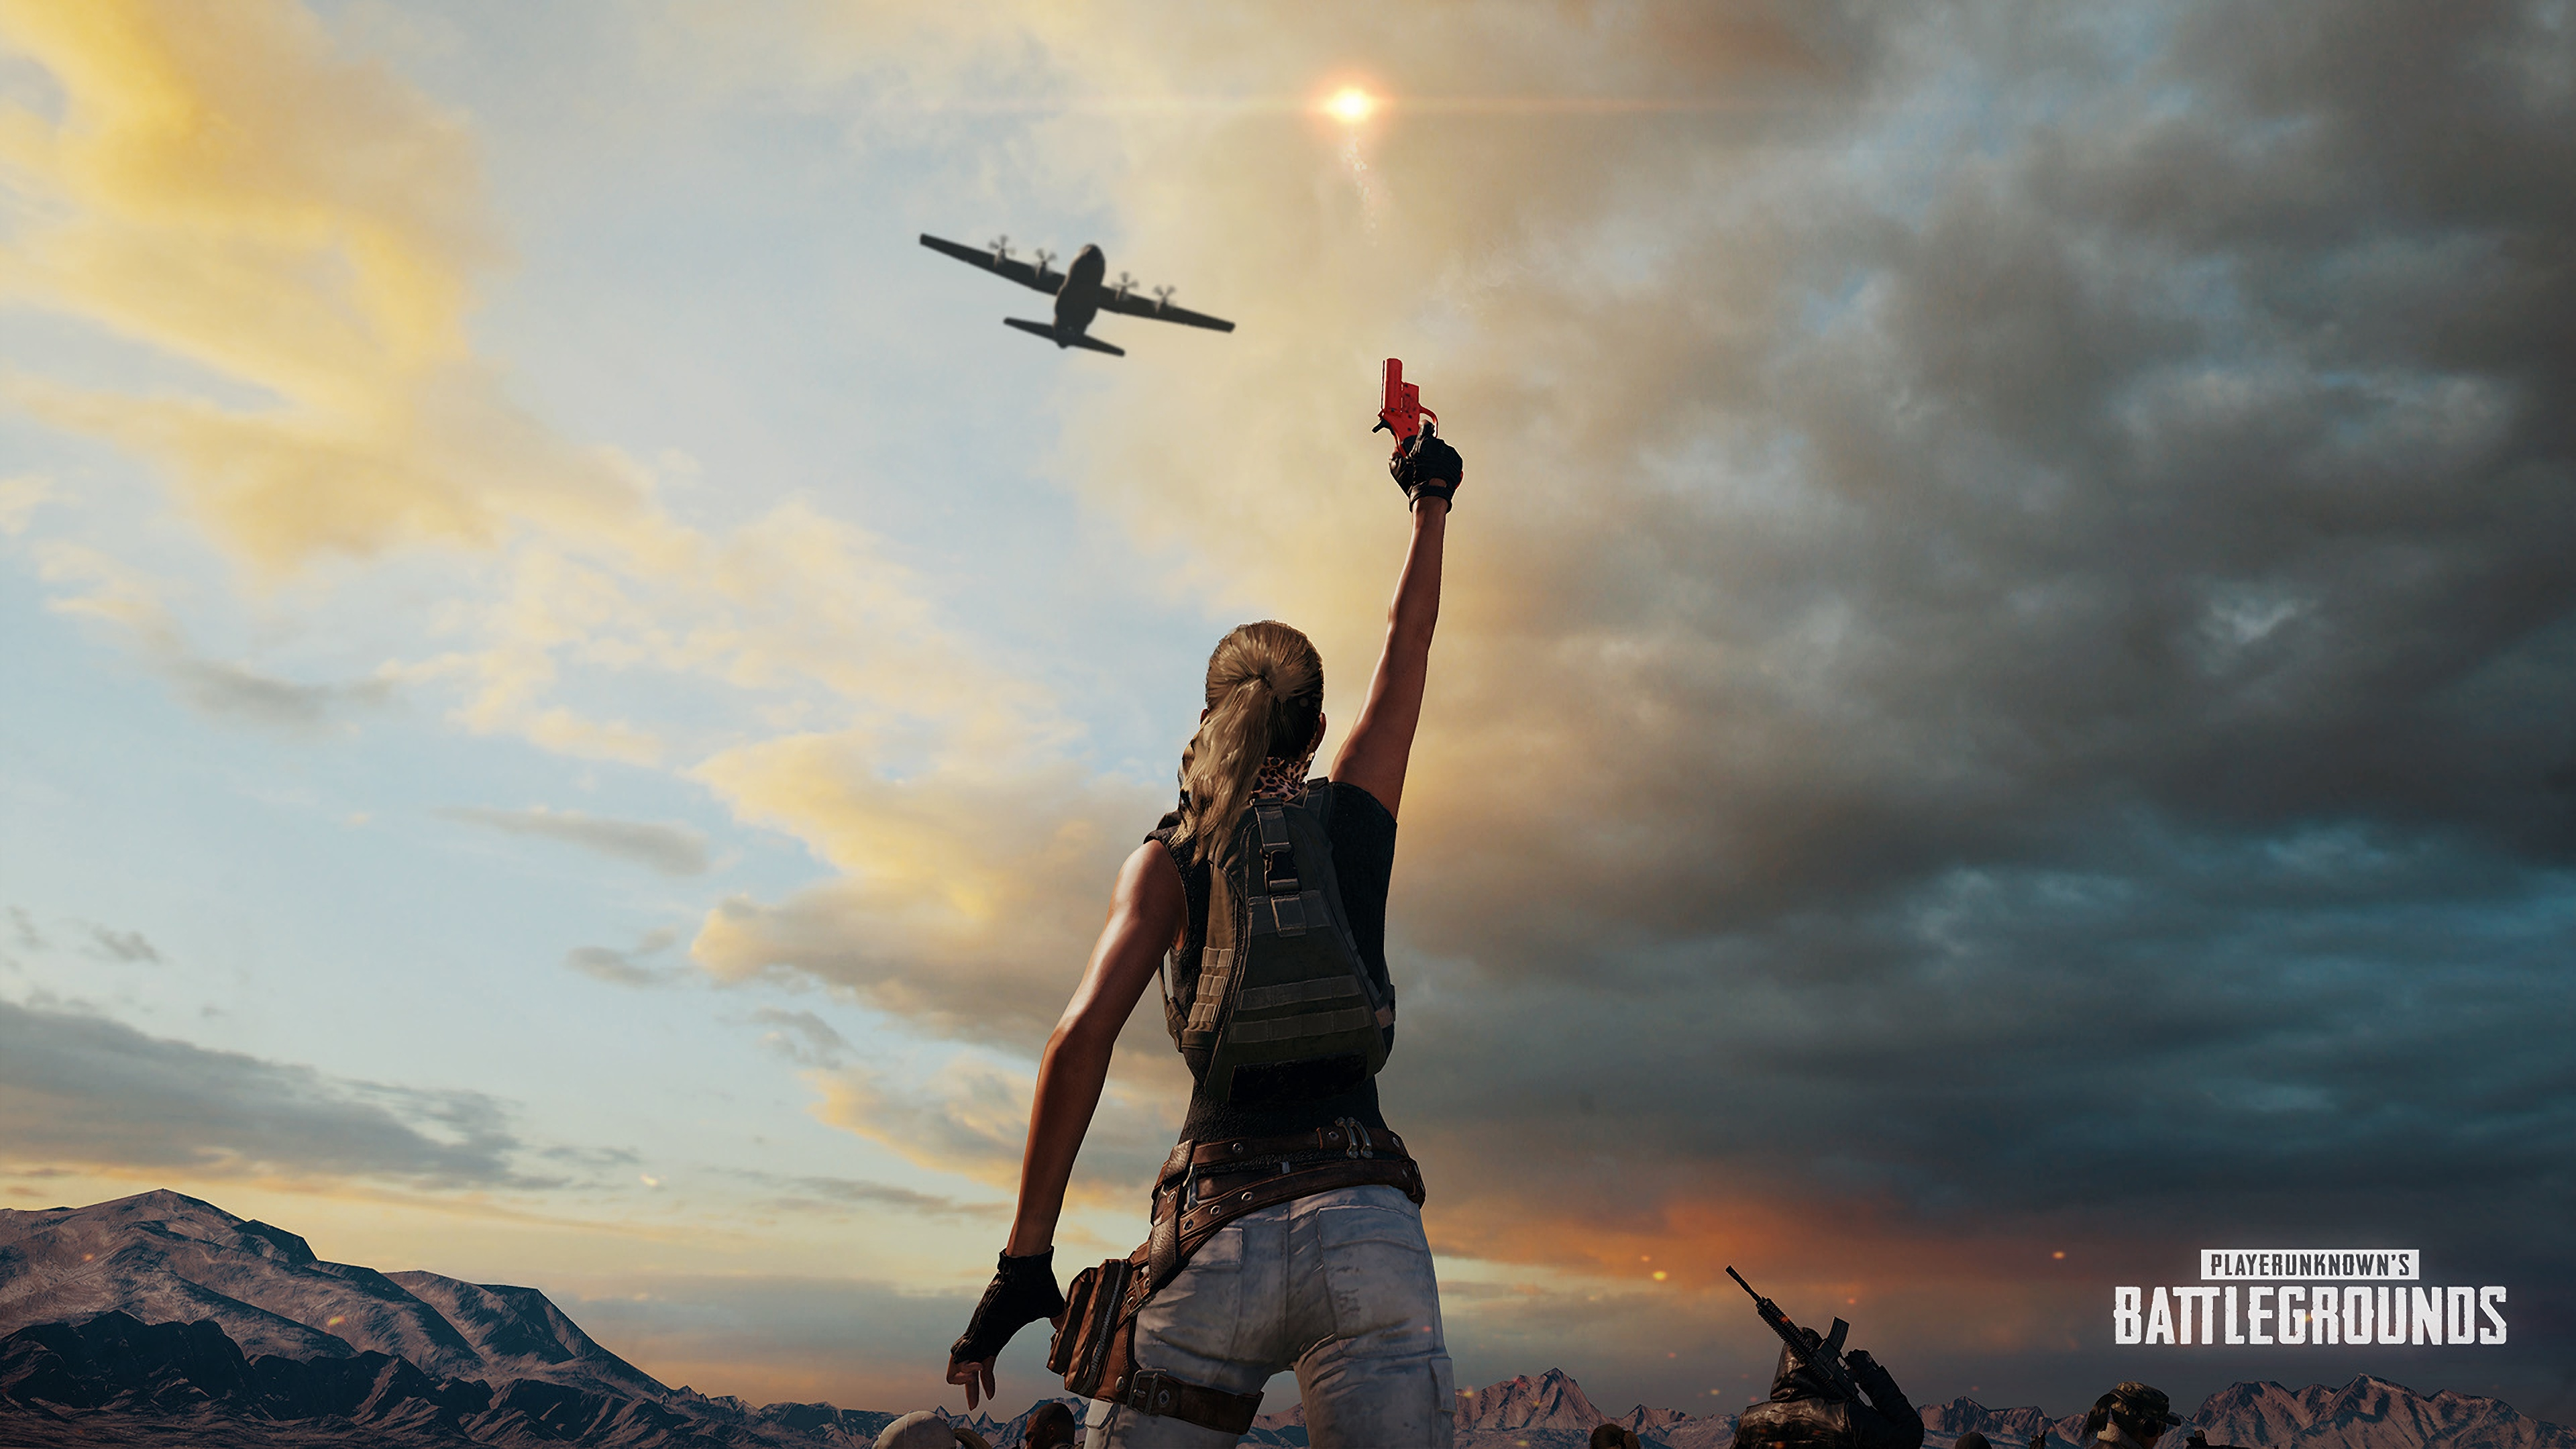 Top 13 Pubg Wallpapers In Full Hd For Pc And Phone: PUBG Playerunknowns Battlegrounds Background 1